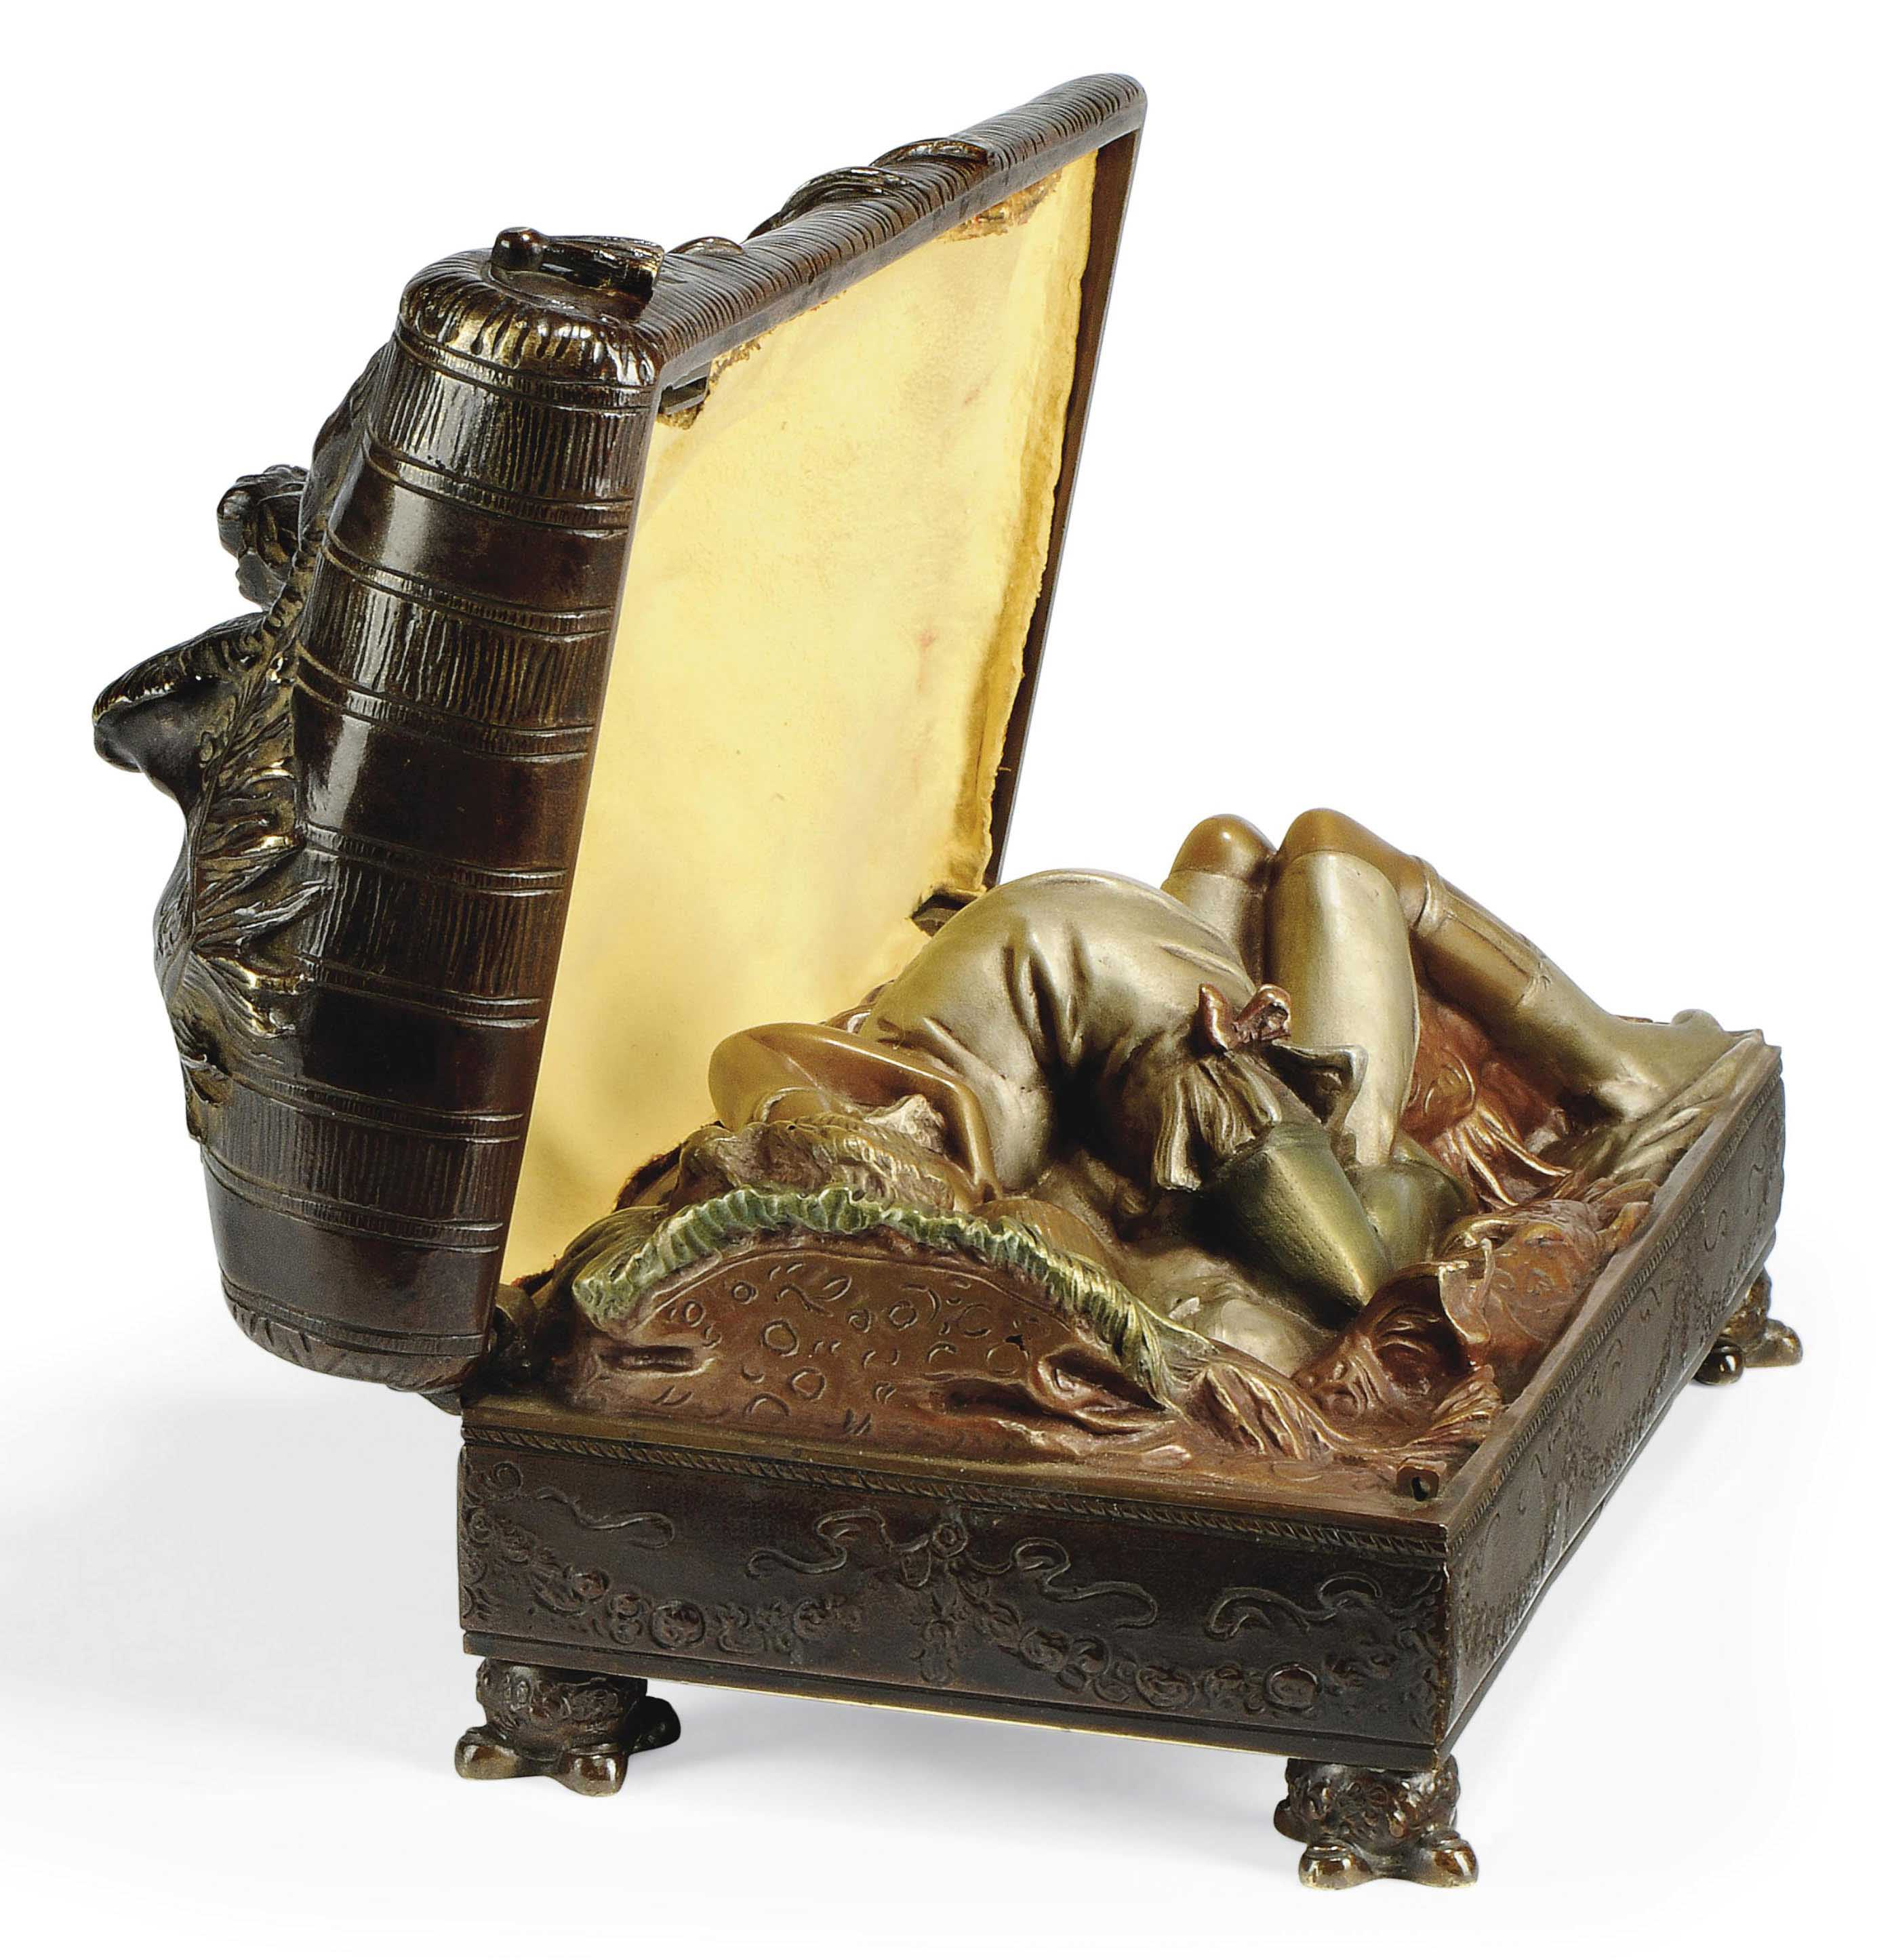 AN EROTIC, PATINATED AND COLD-PAINTED BRONZE BOX WITH HINGED COVER AND KEY ATTRIBUTED TO BRUNO ZACH